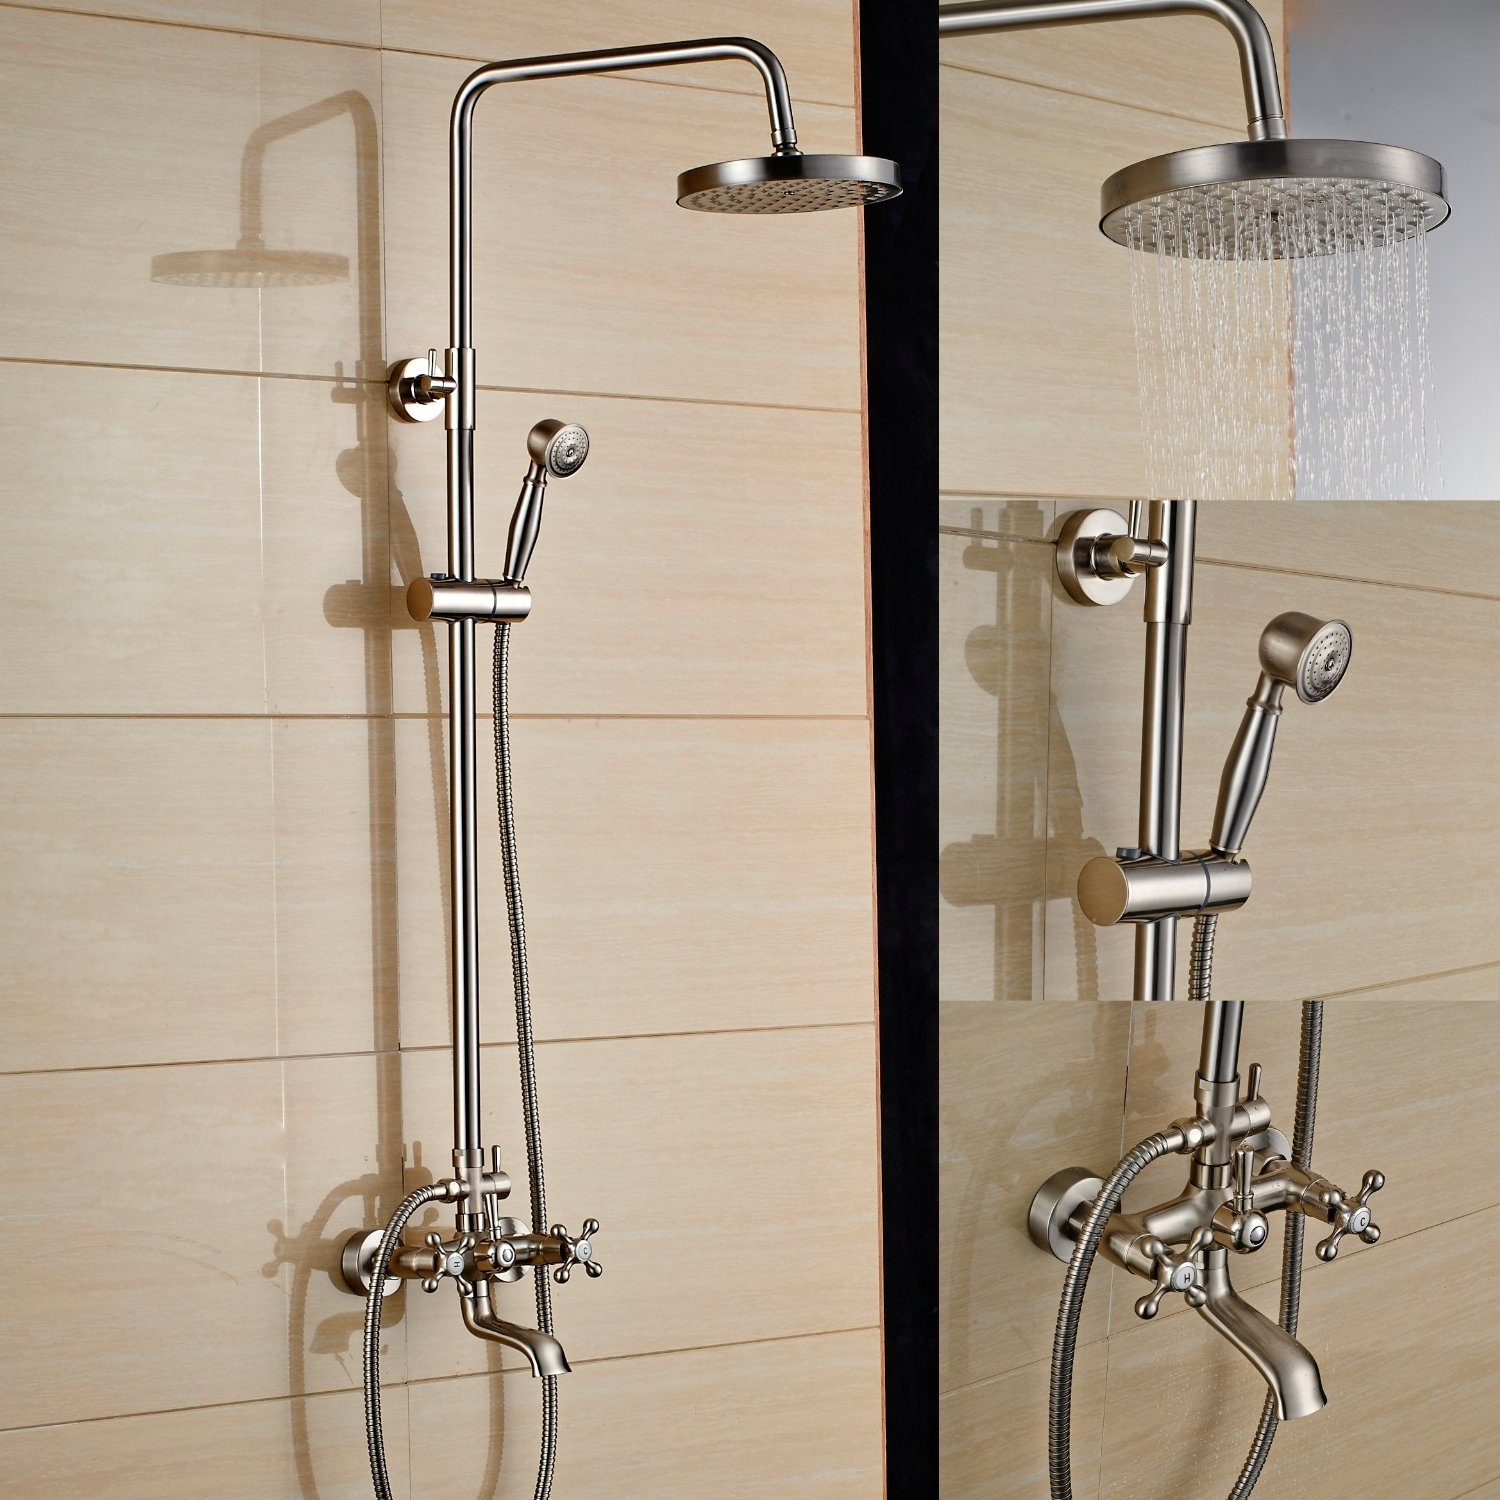 Ideas, bathroom delta handheld shower delta in2ition combo shower head intended for measurements 1500 x 1500  .